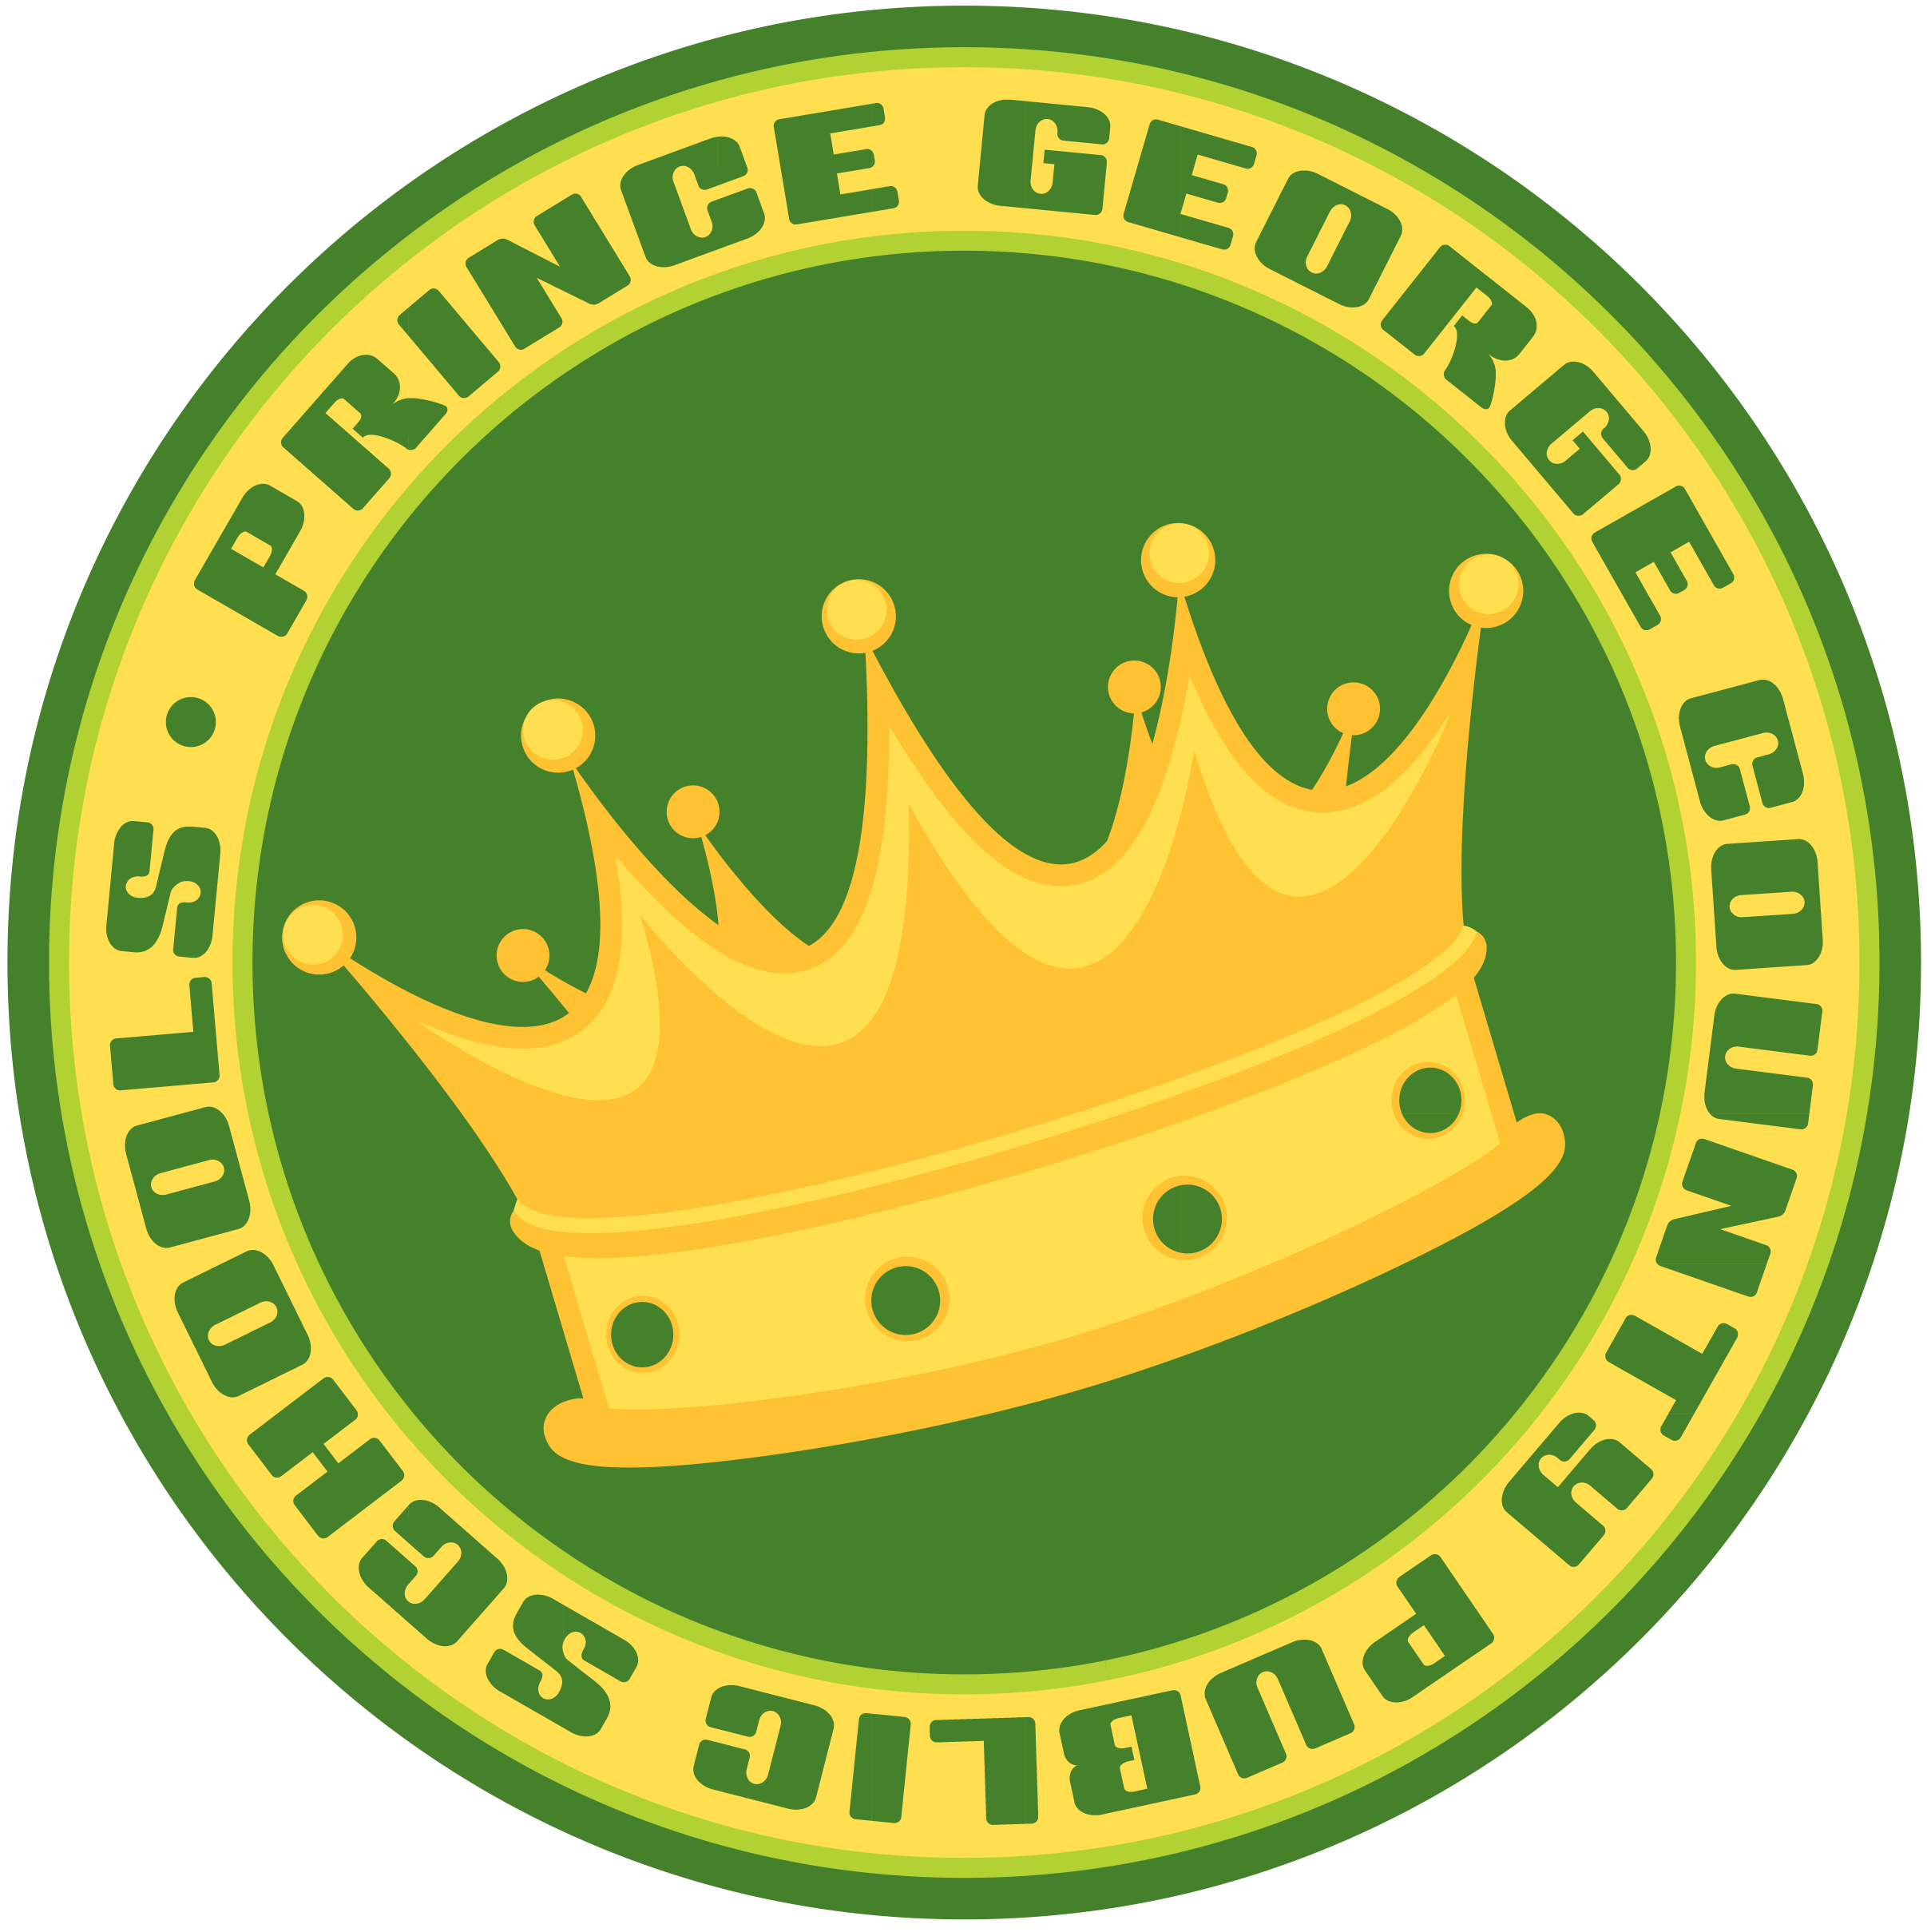 Prince George's County Colours Group logo